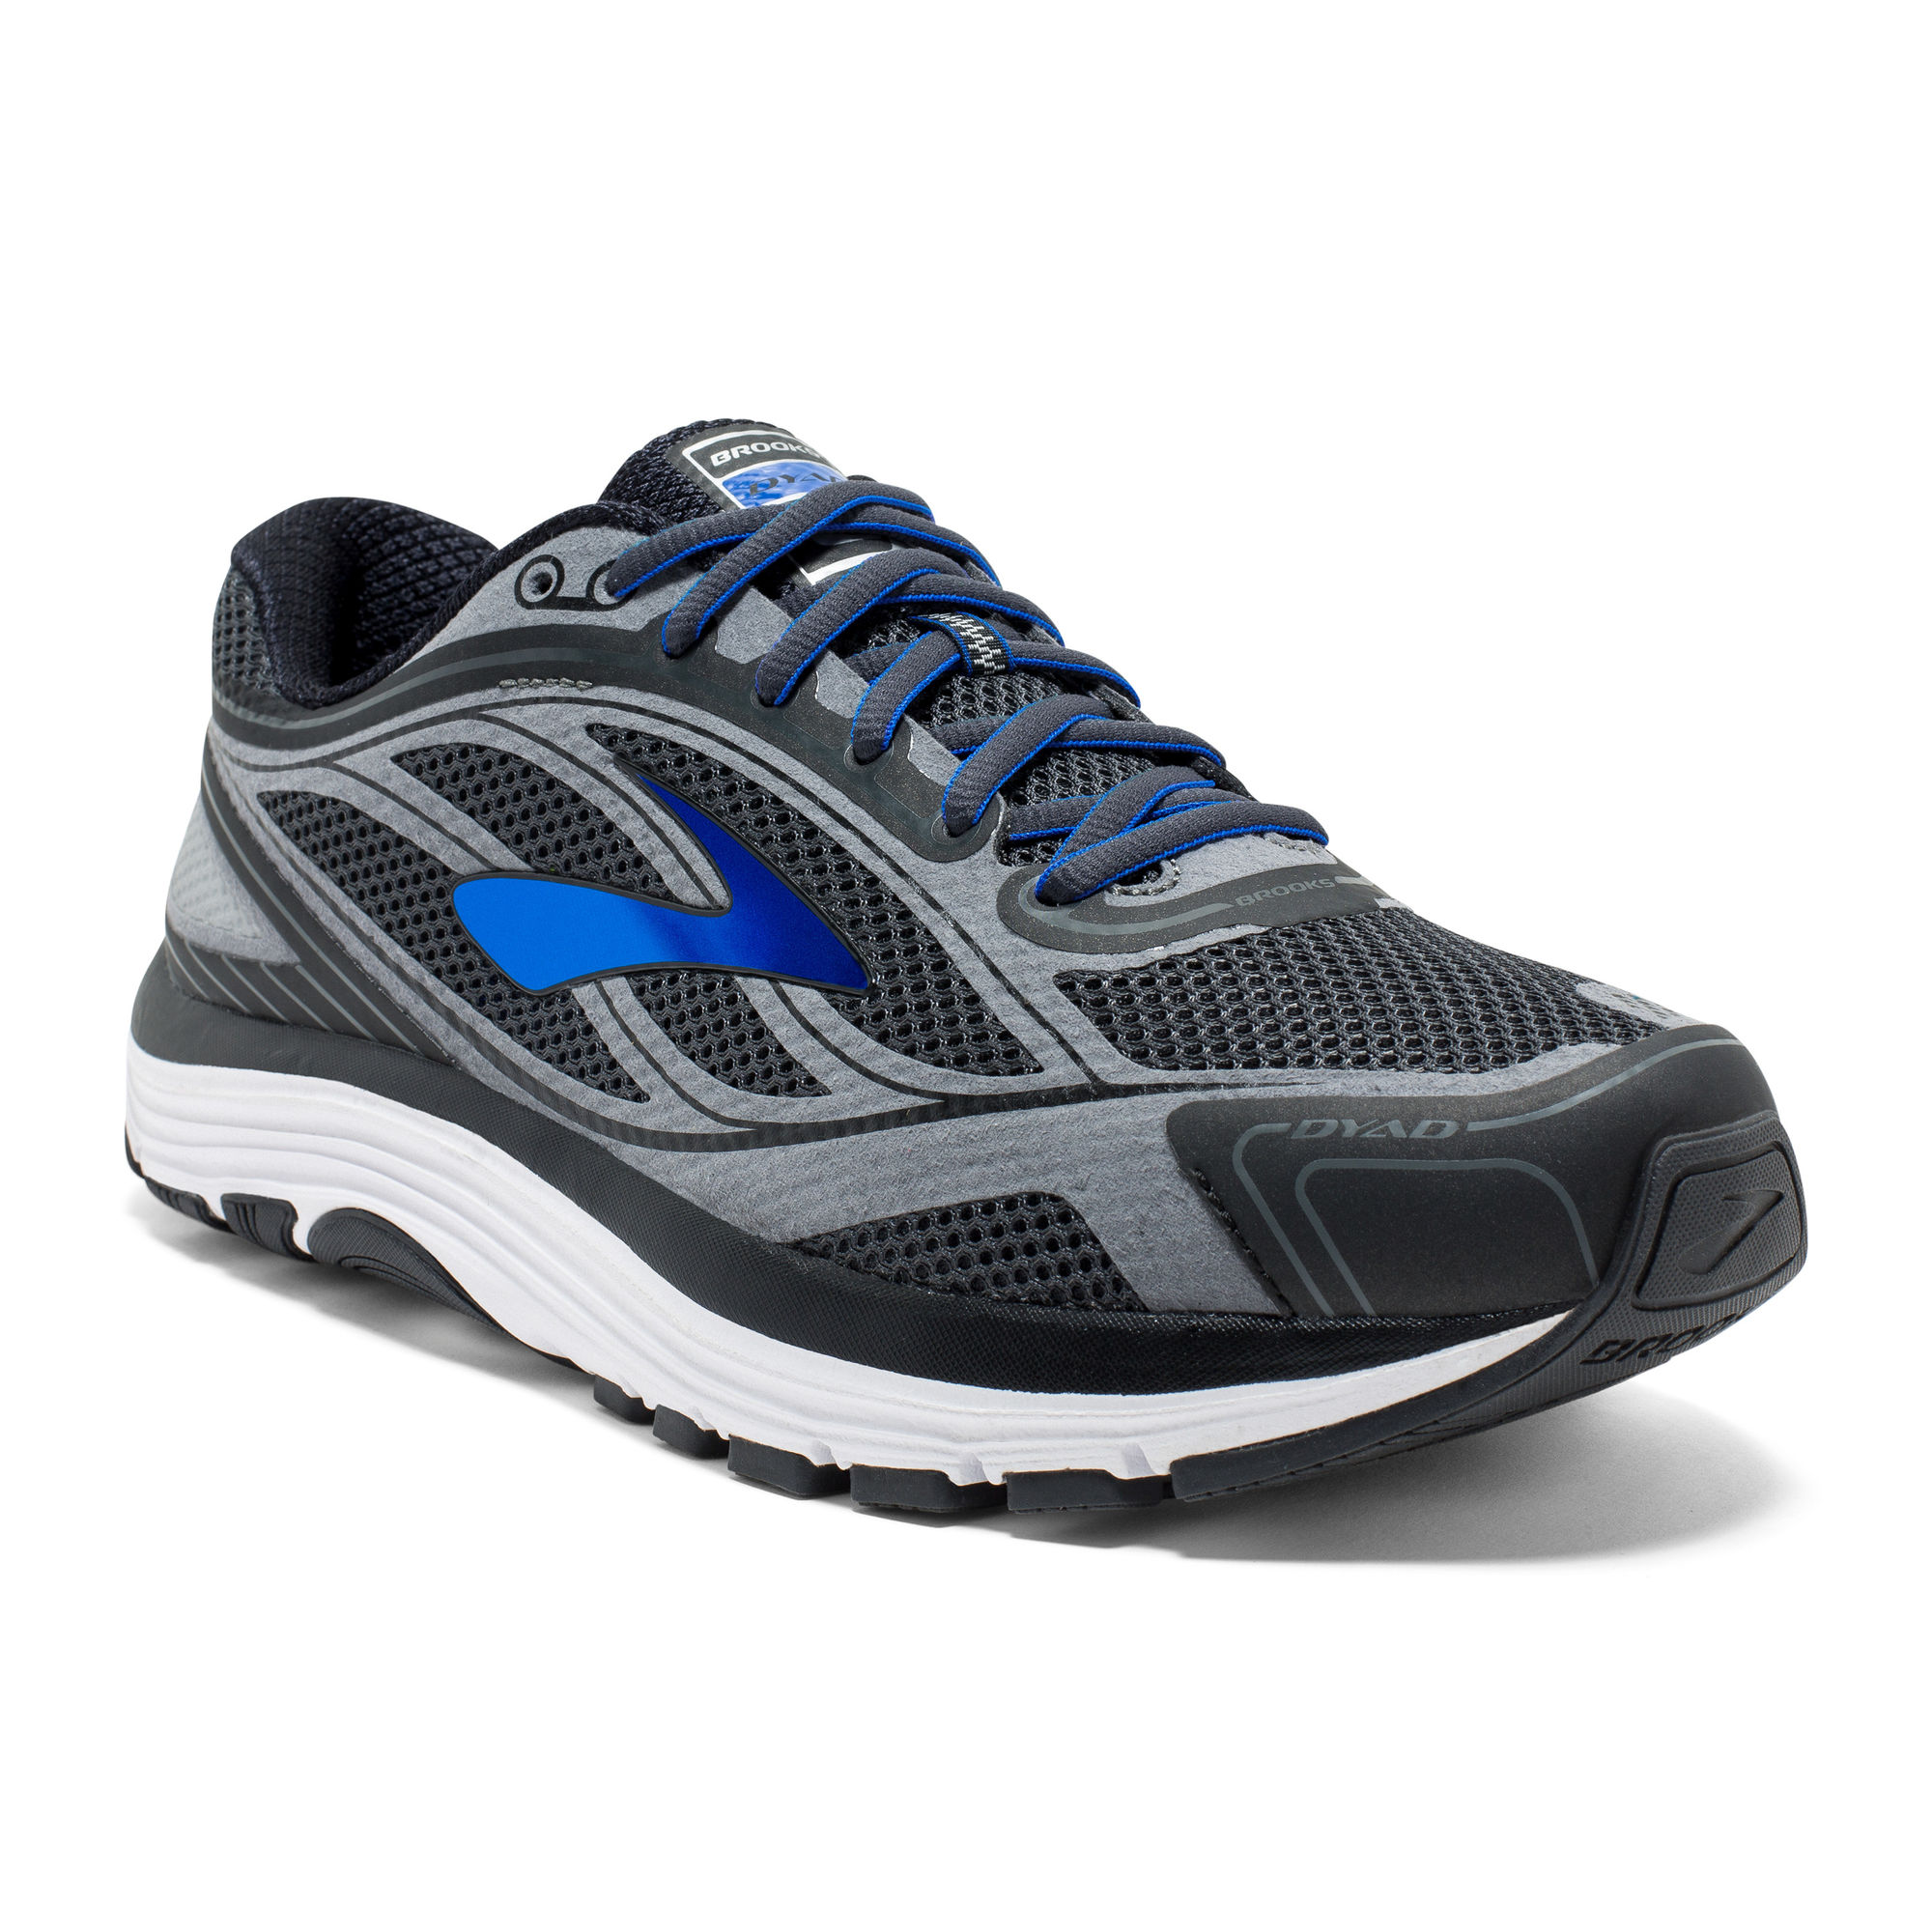 Brooks Dyad 9 4E in Grau Blau